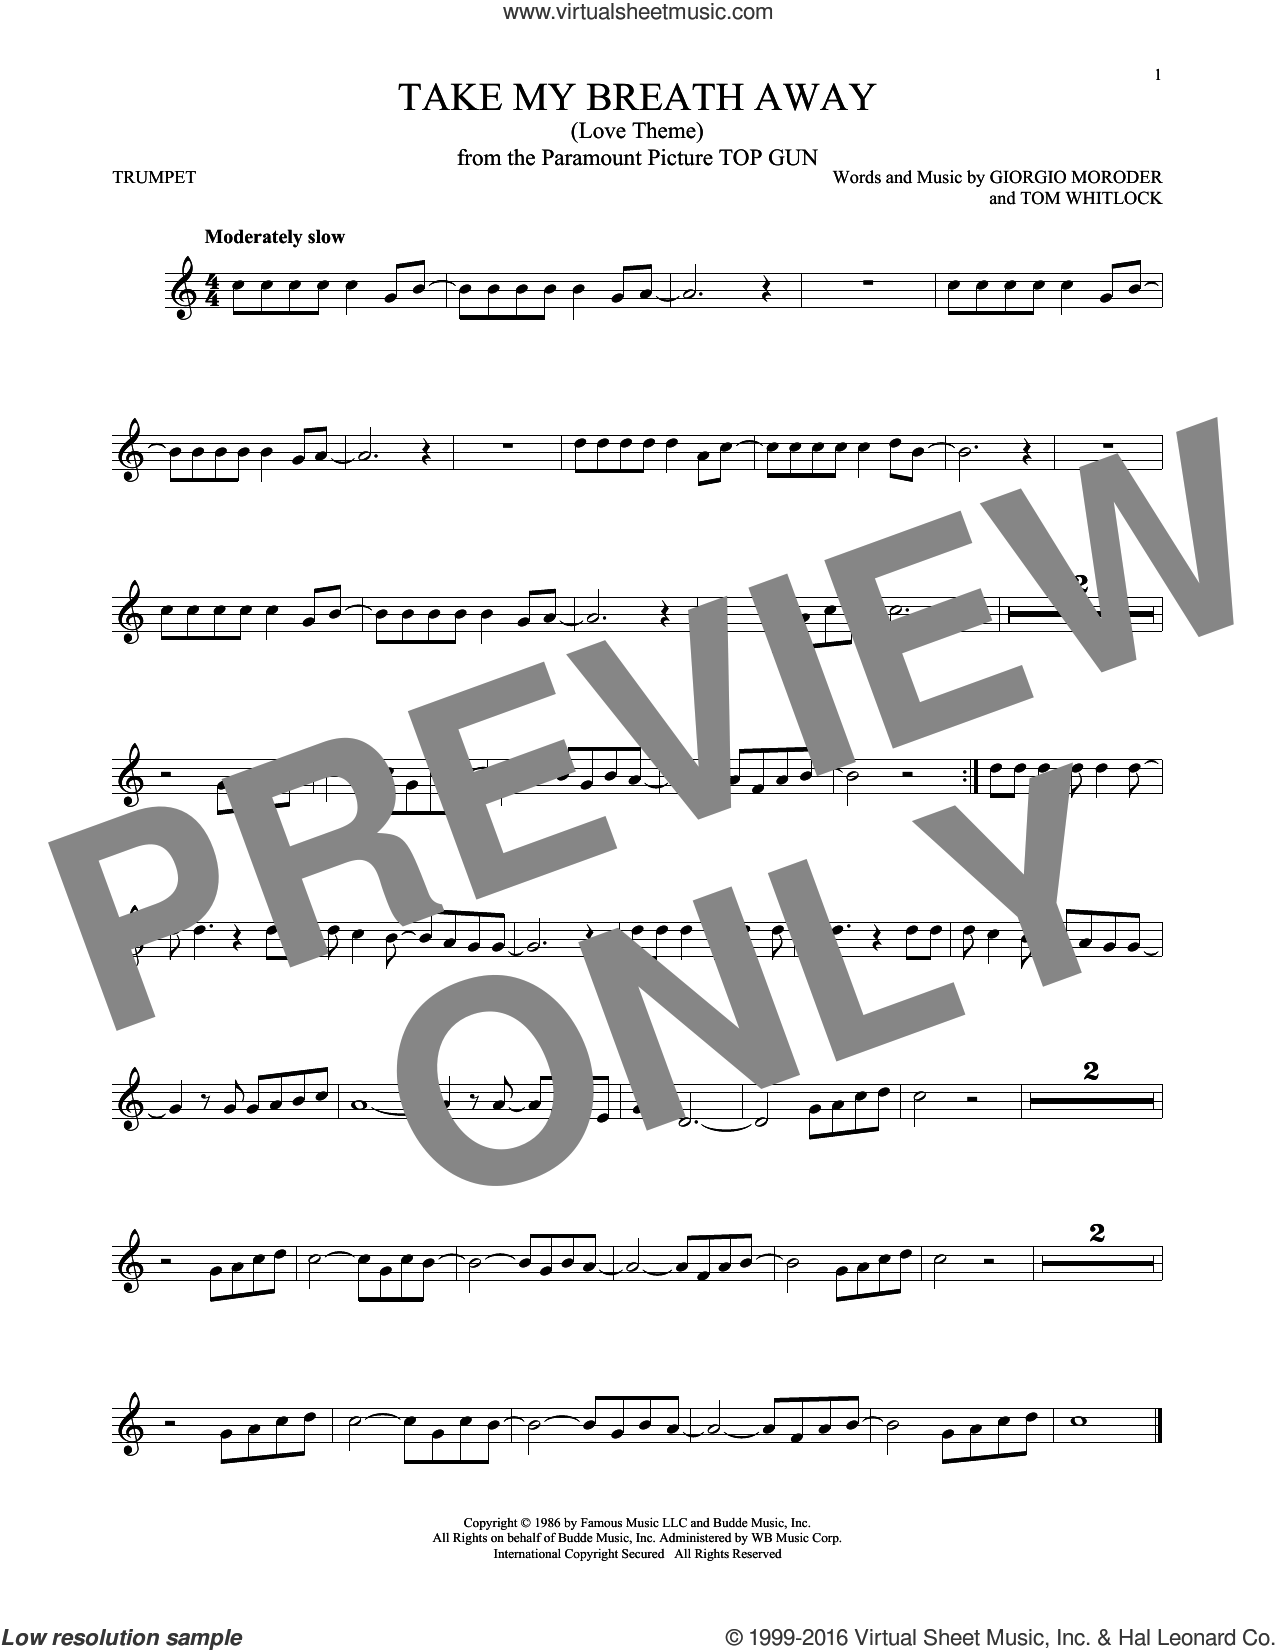 Take My Breath Away (Love Theme) sheet music for trumpet solo by Giorgio Moroder, Irving Berlin, Jessica Simpson and Tom Whitlock, intermediate skill level